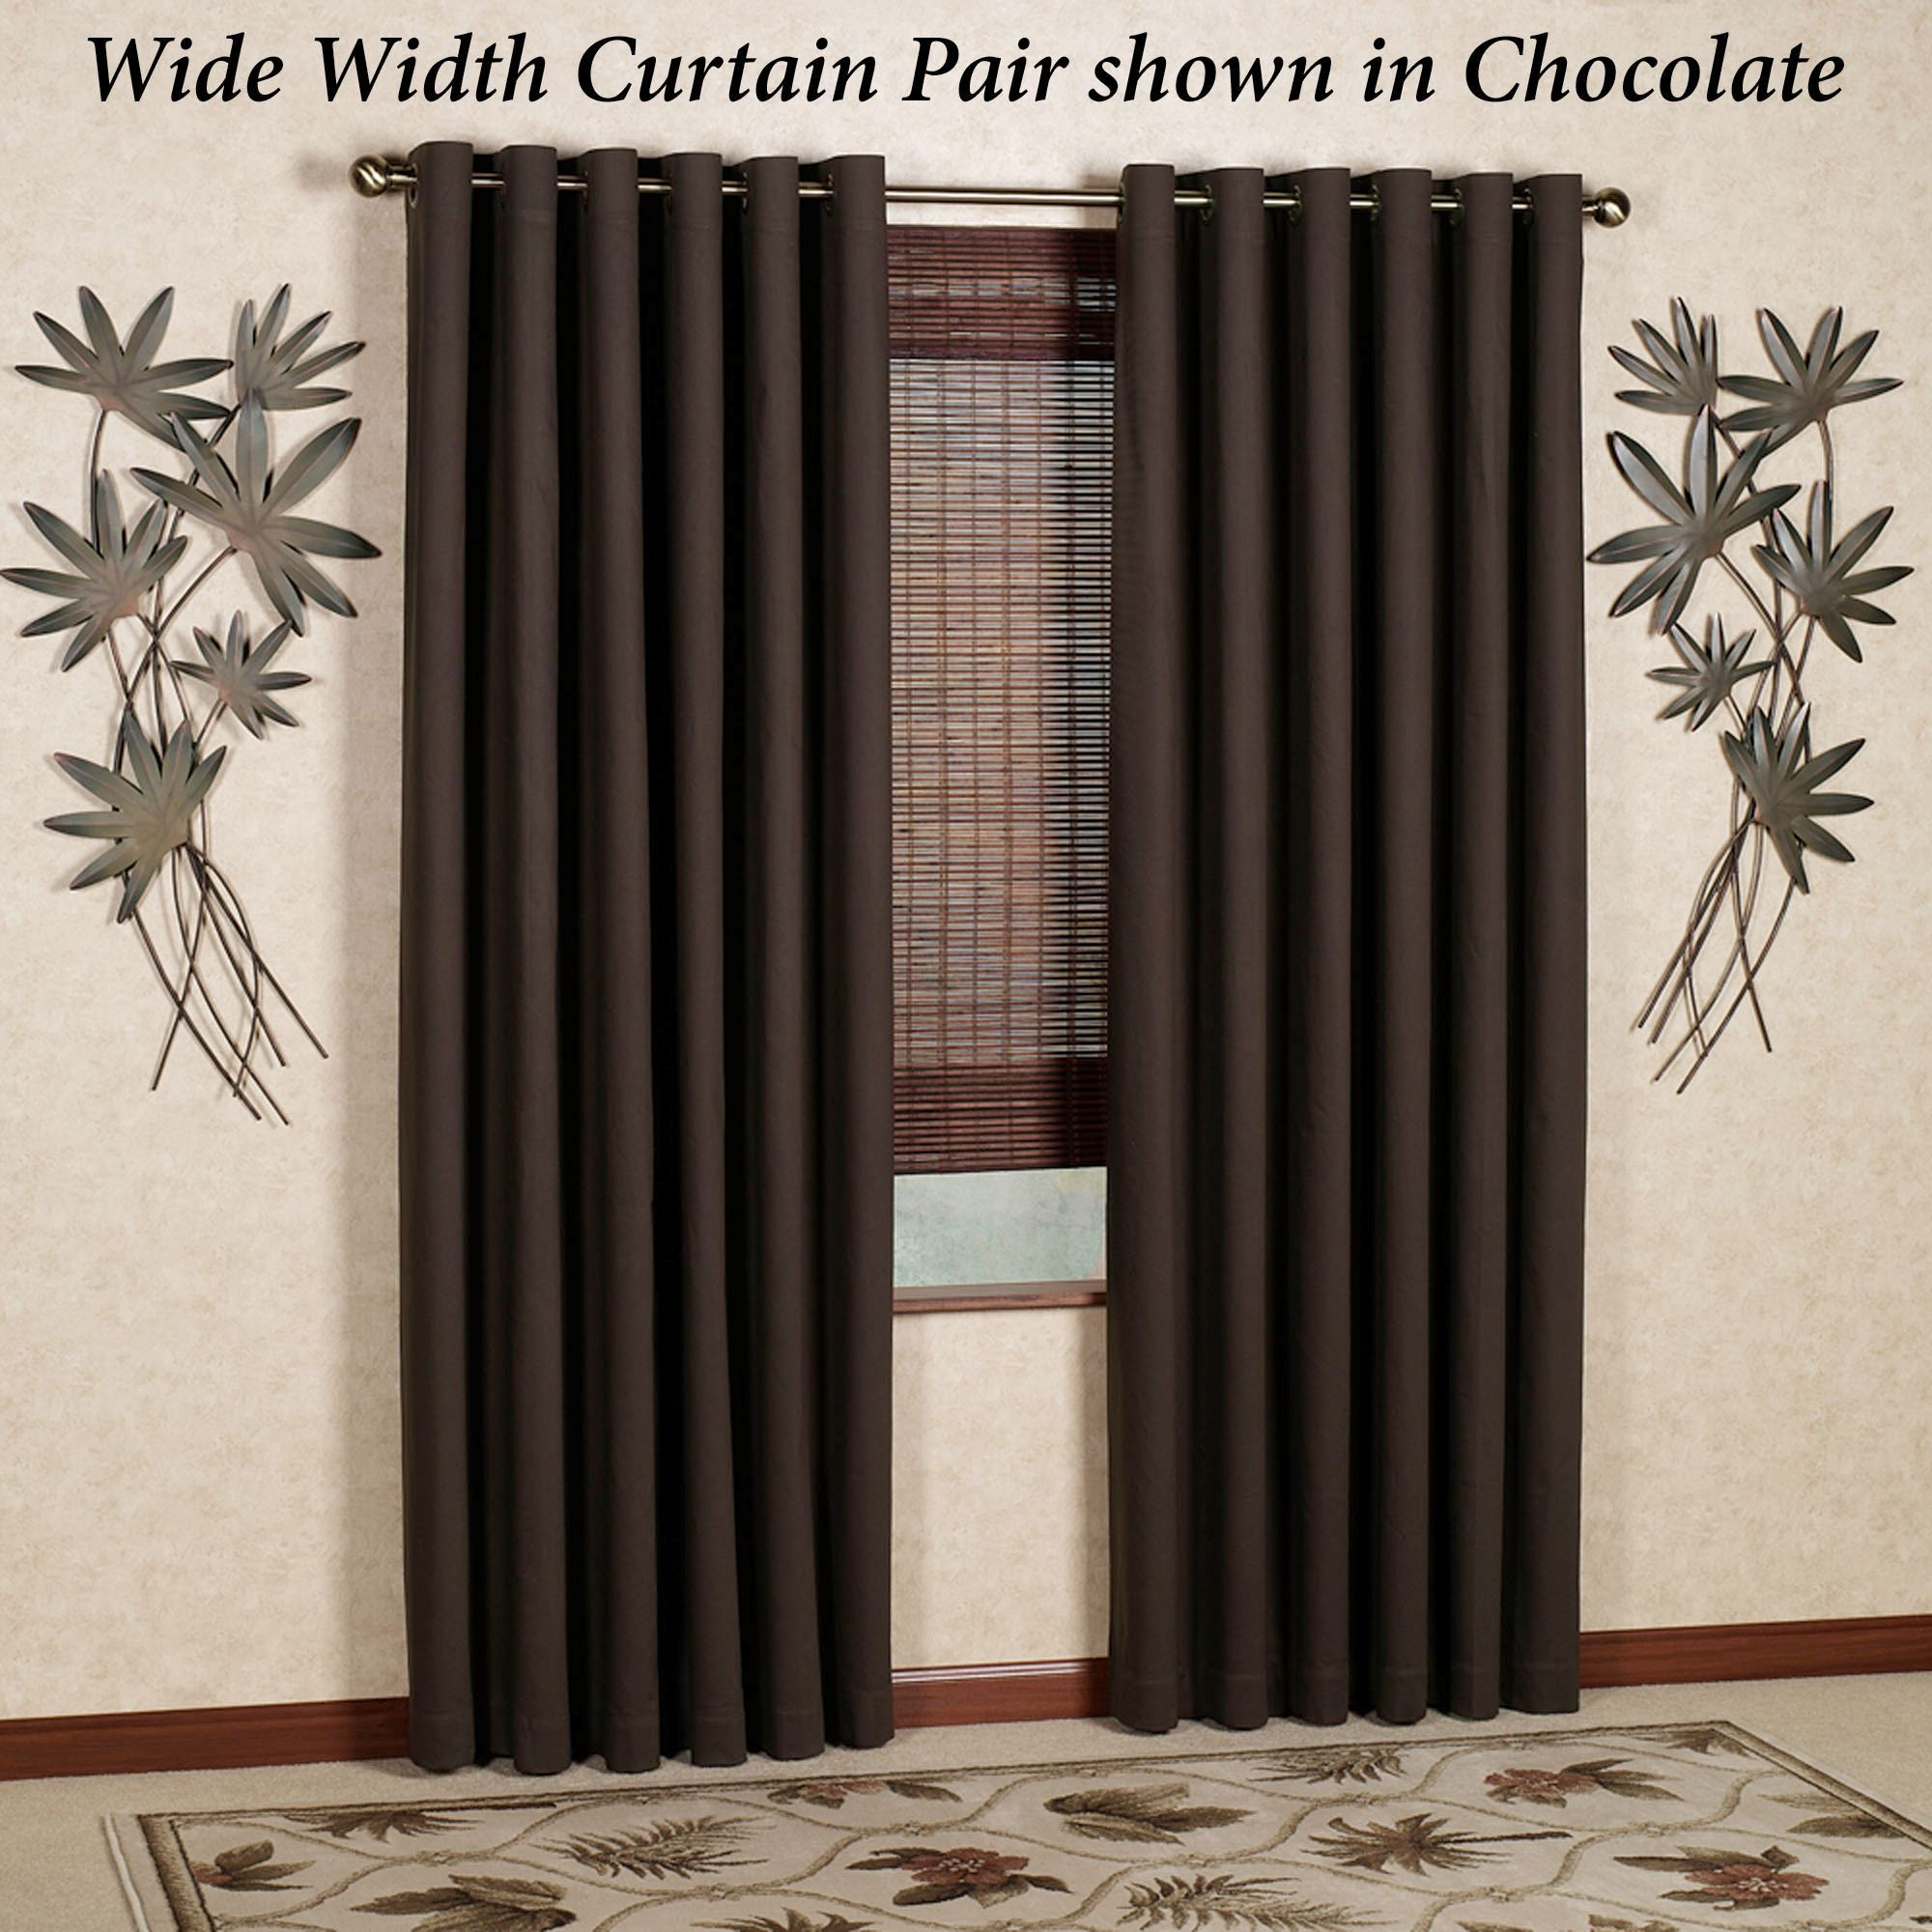 custom extra curtain best roman drapes fancy bedroom wide window and size designs curtains full ideas living of online blackout making room elegant for shades world chocolate decoration